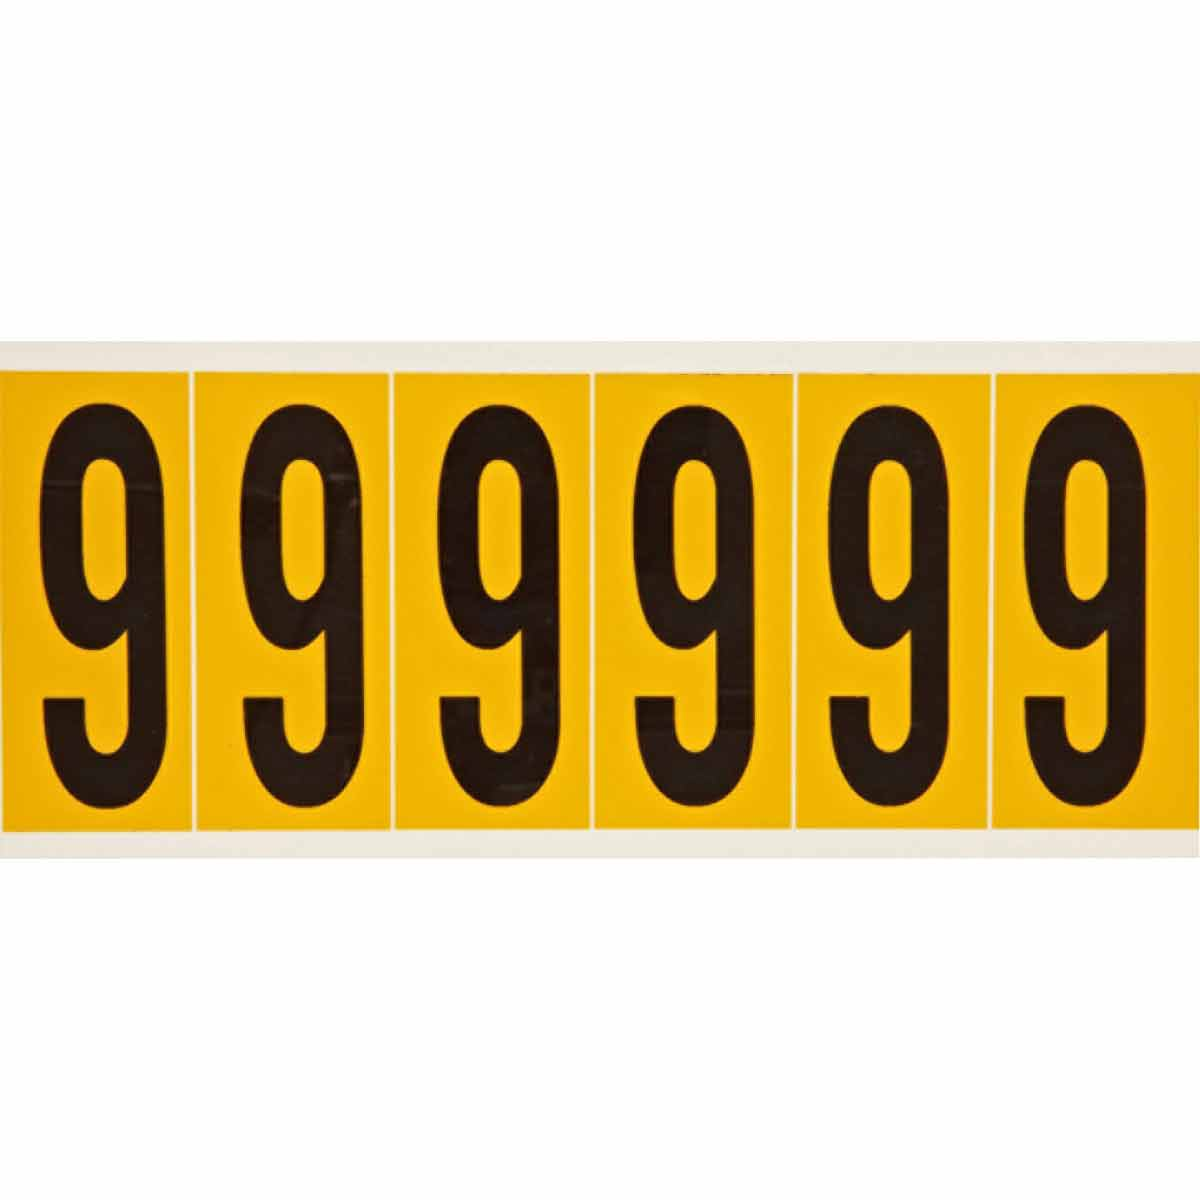 Brady® 1550-9 Non-Reflective Standard Number Label, 2.938 in H Black 9 Character, Yellow Background, B-946 Vinyl